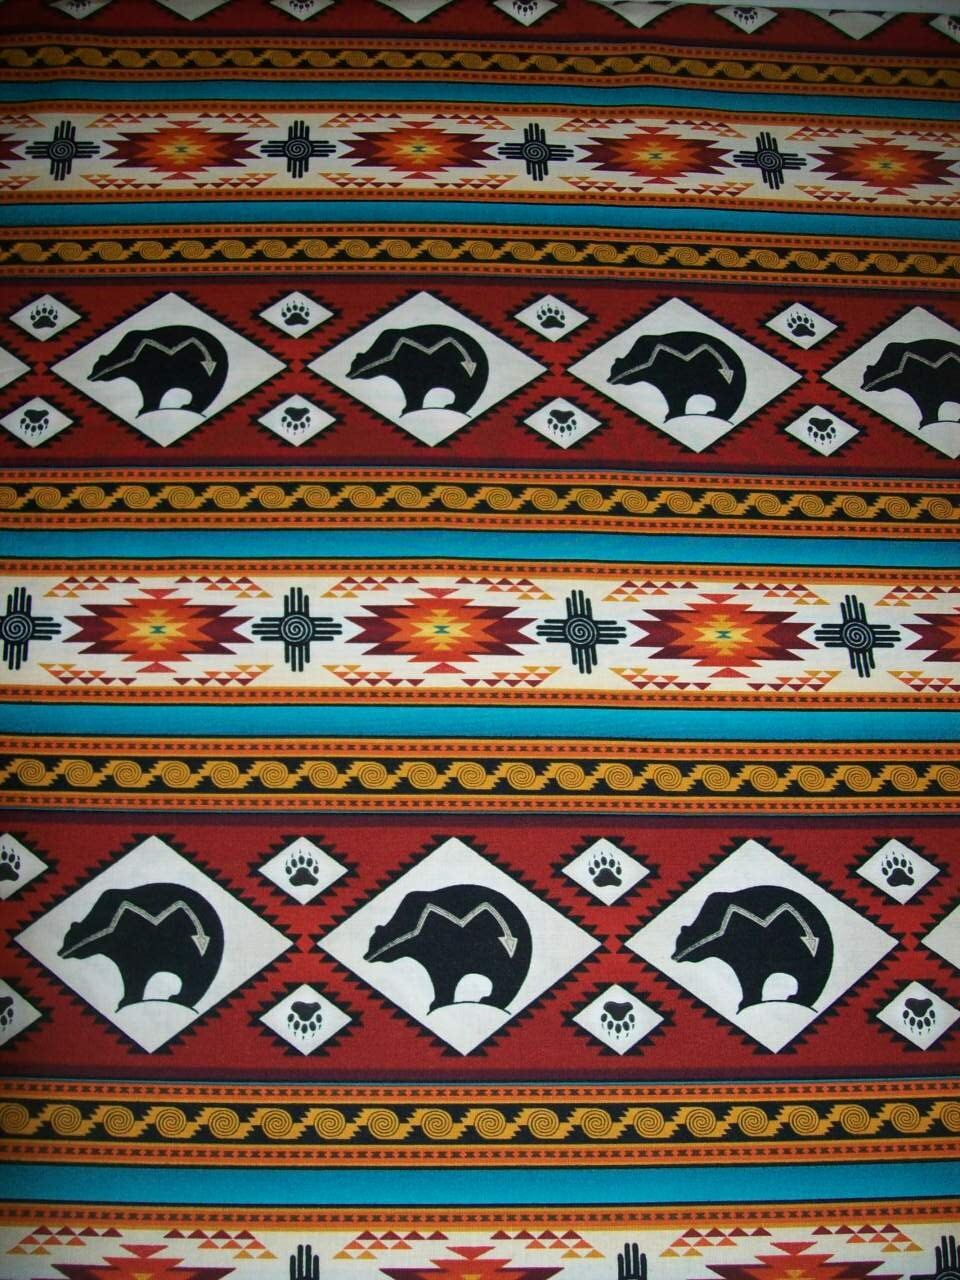 Per Yard Terracotta Color Tribal Print Fabric/Designed for